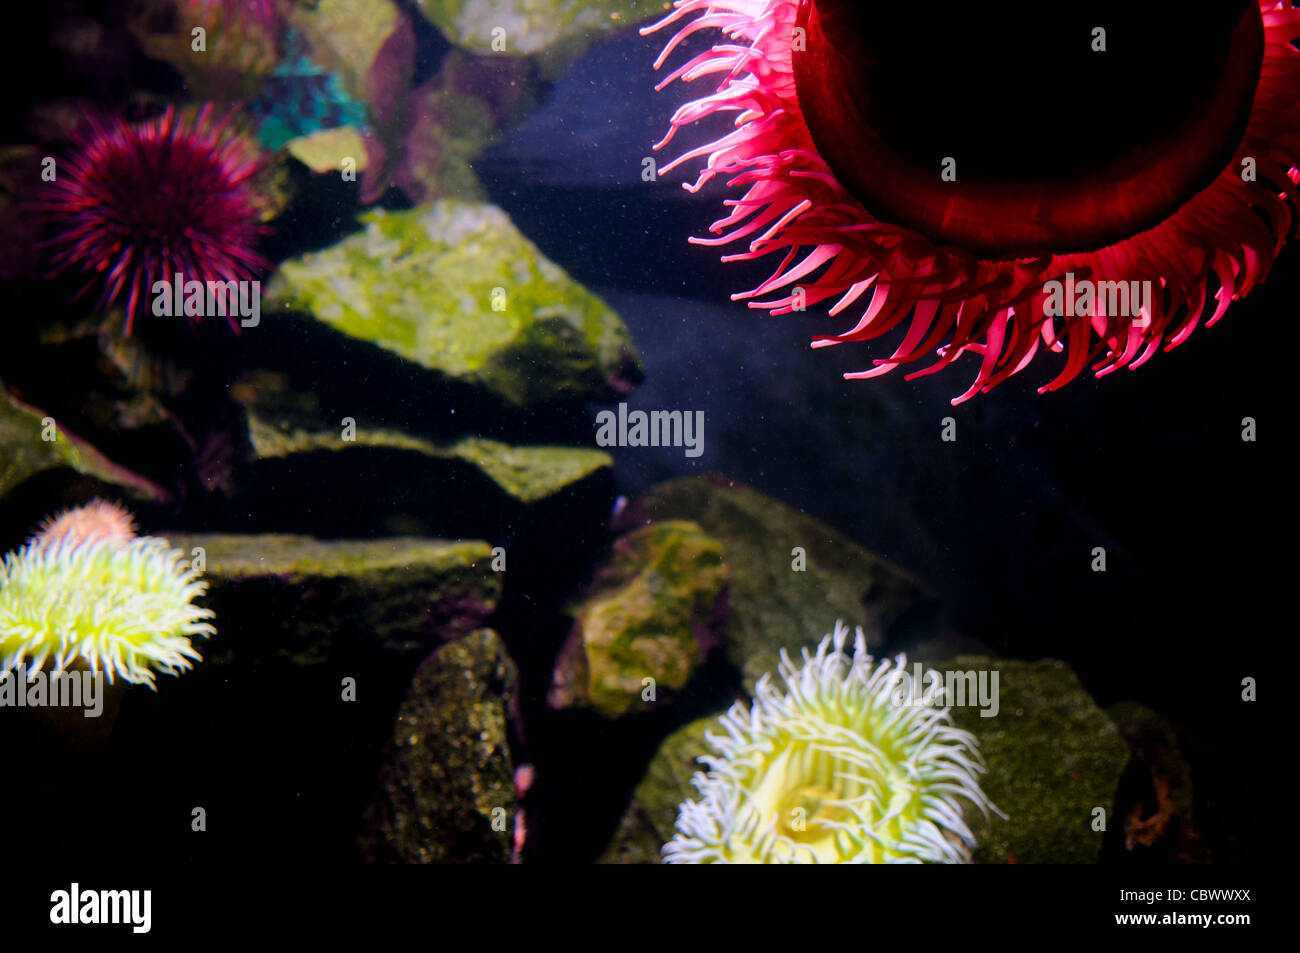 WASHINGTON DC, USA - Brightly colored sea anemones in an exhibit at Washington DC's National Aquarium. The National - Stock Image